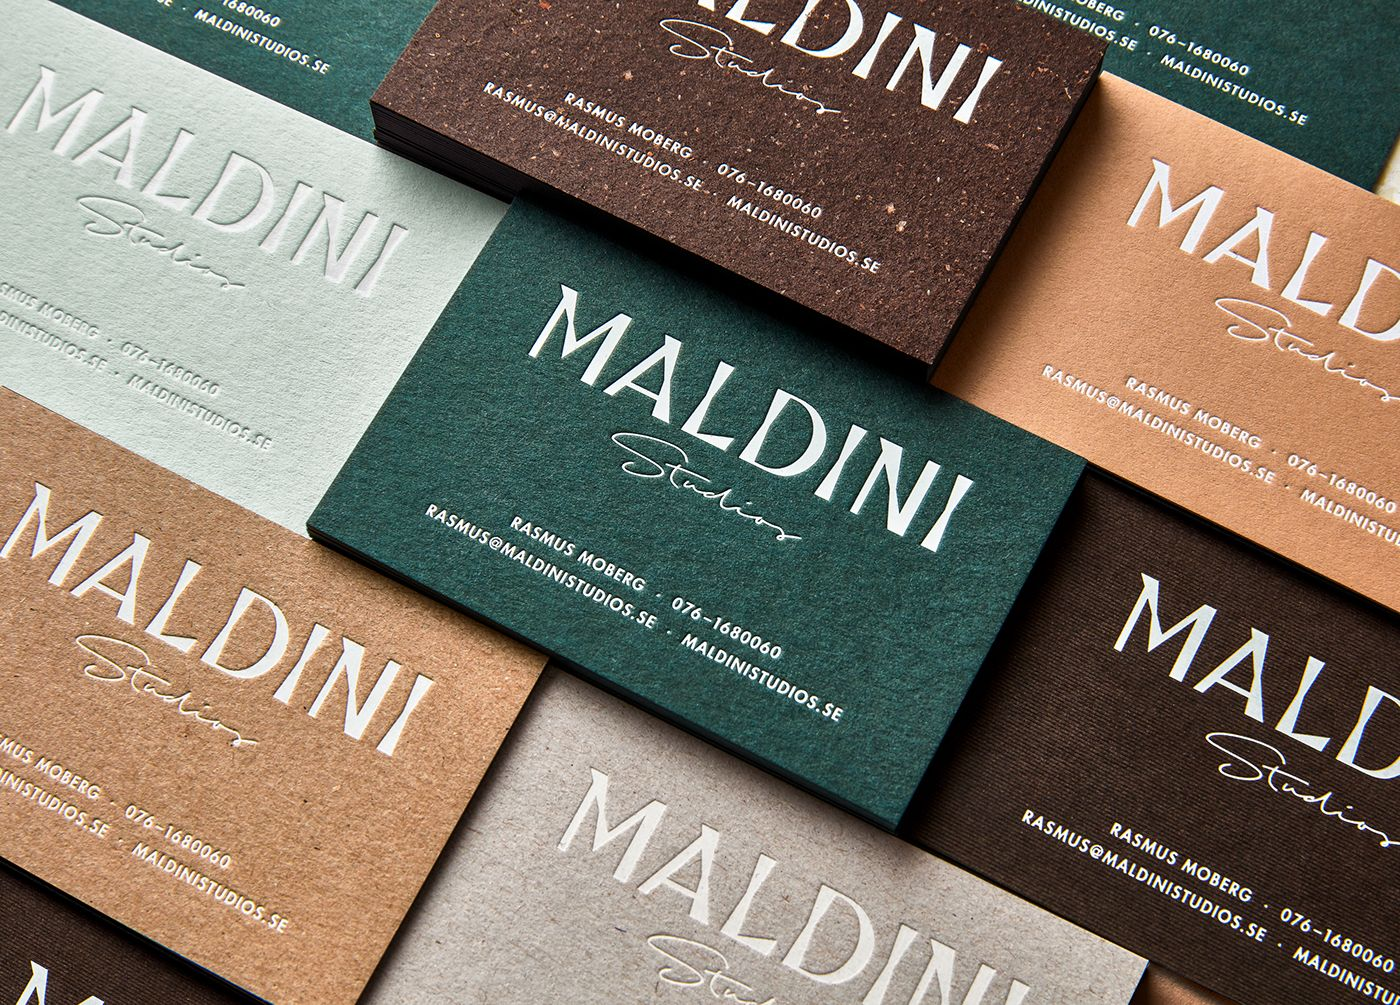 Identity For The Small Independent Interior Design Firm Maldini Studios In Stockholm Sweden